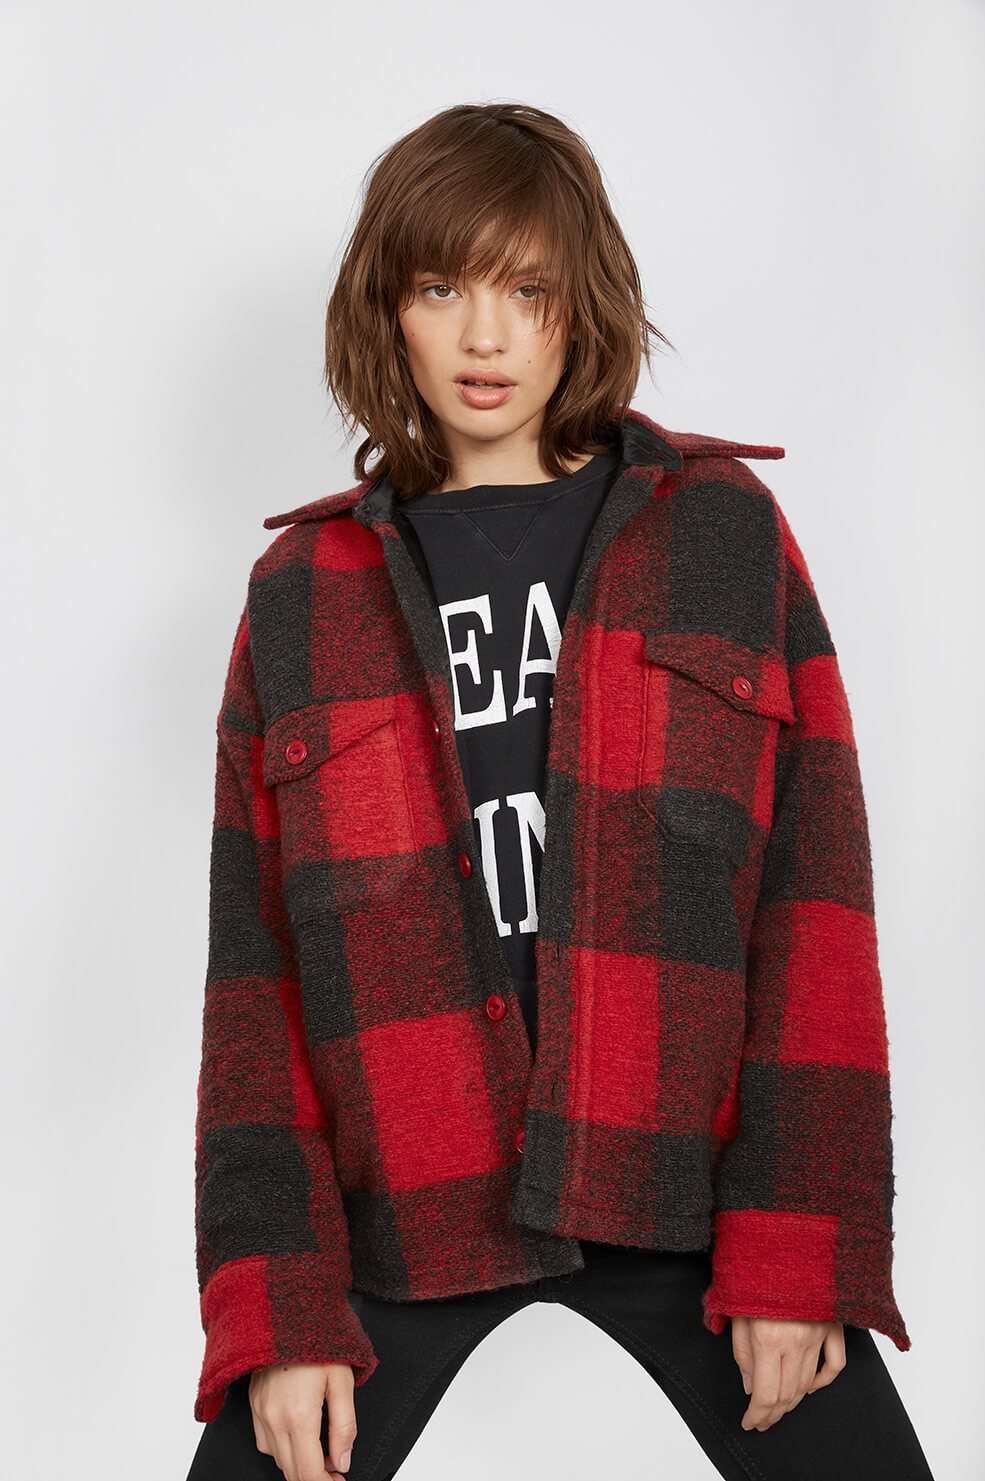 6.  Anine Bing Bobbi Flannel Jacket  - $299